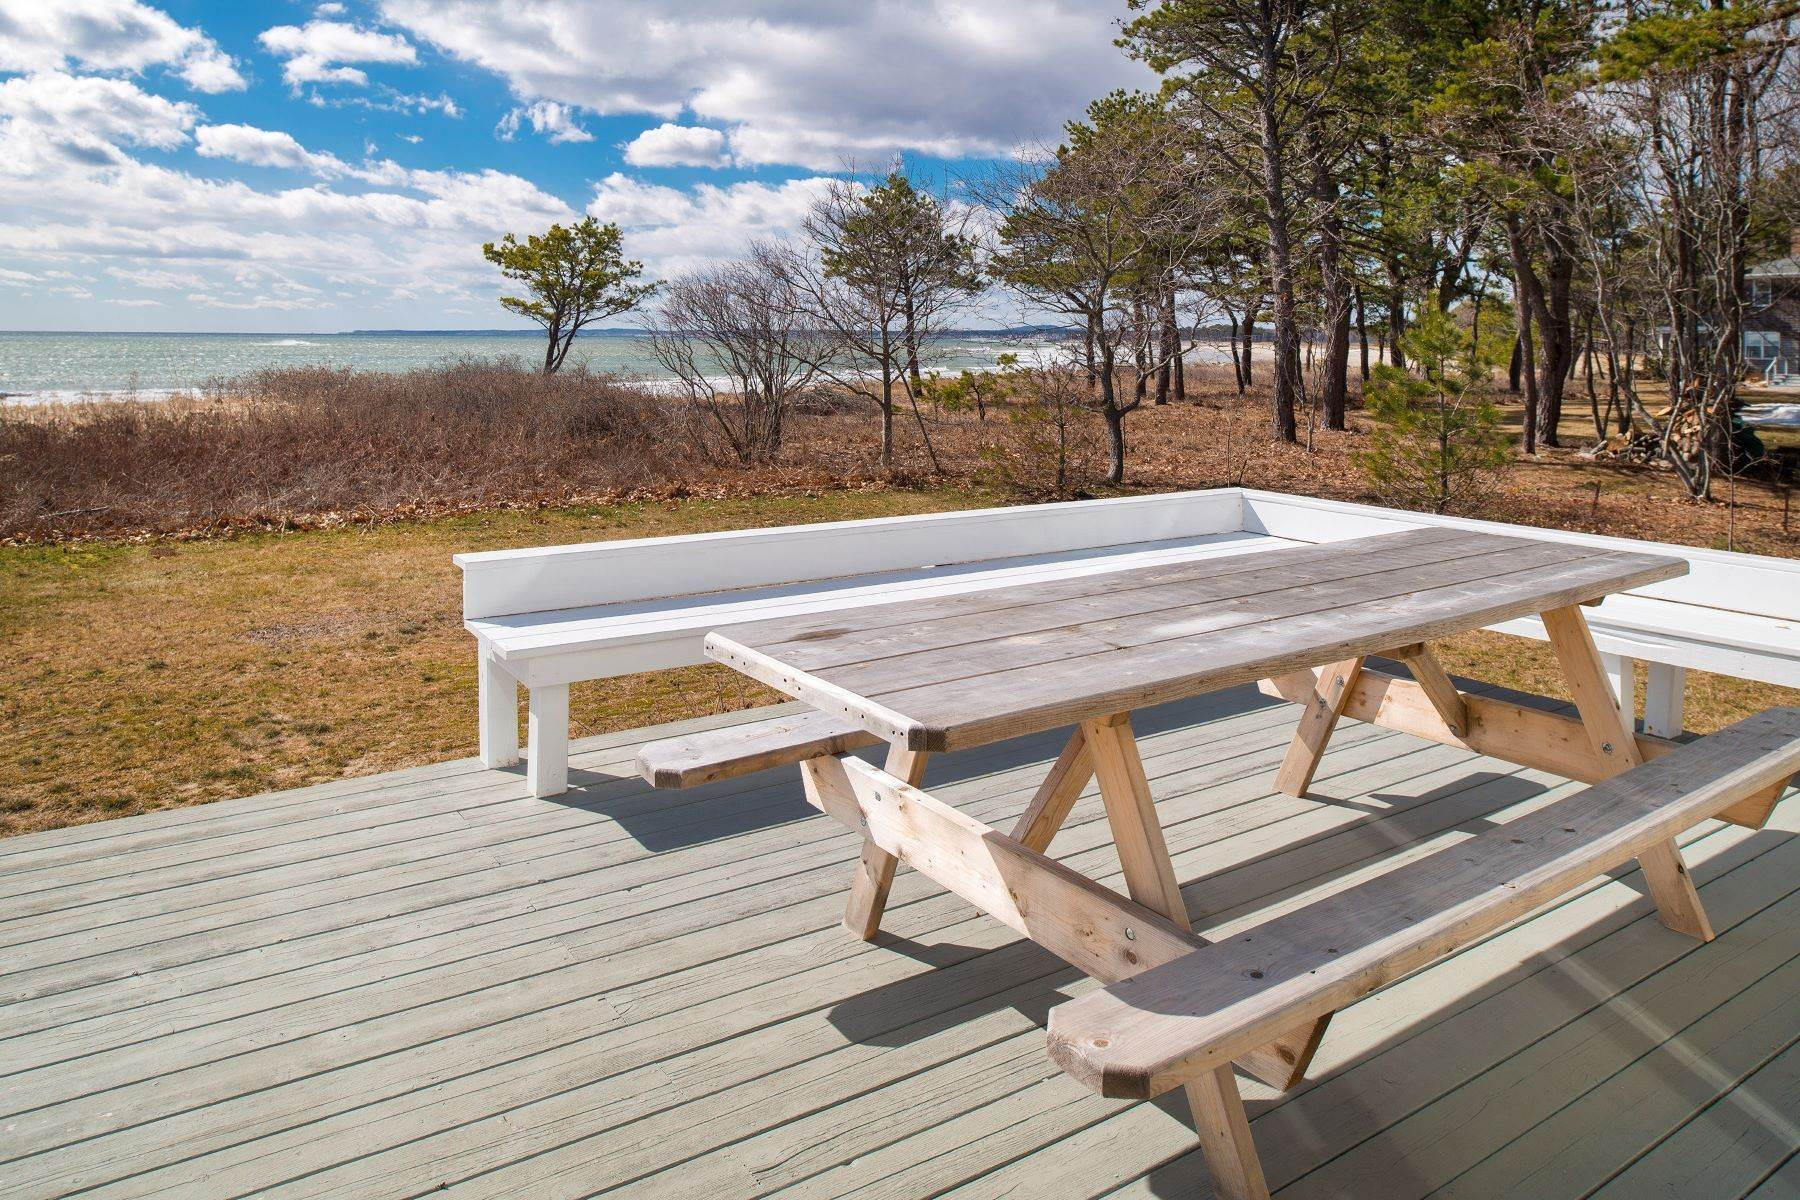 2. Other Residential Homes at Sandpiper 22 Crescent Surf Road, Kennebunk, ME 04043